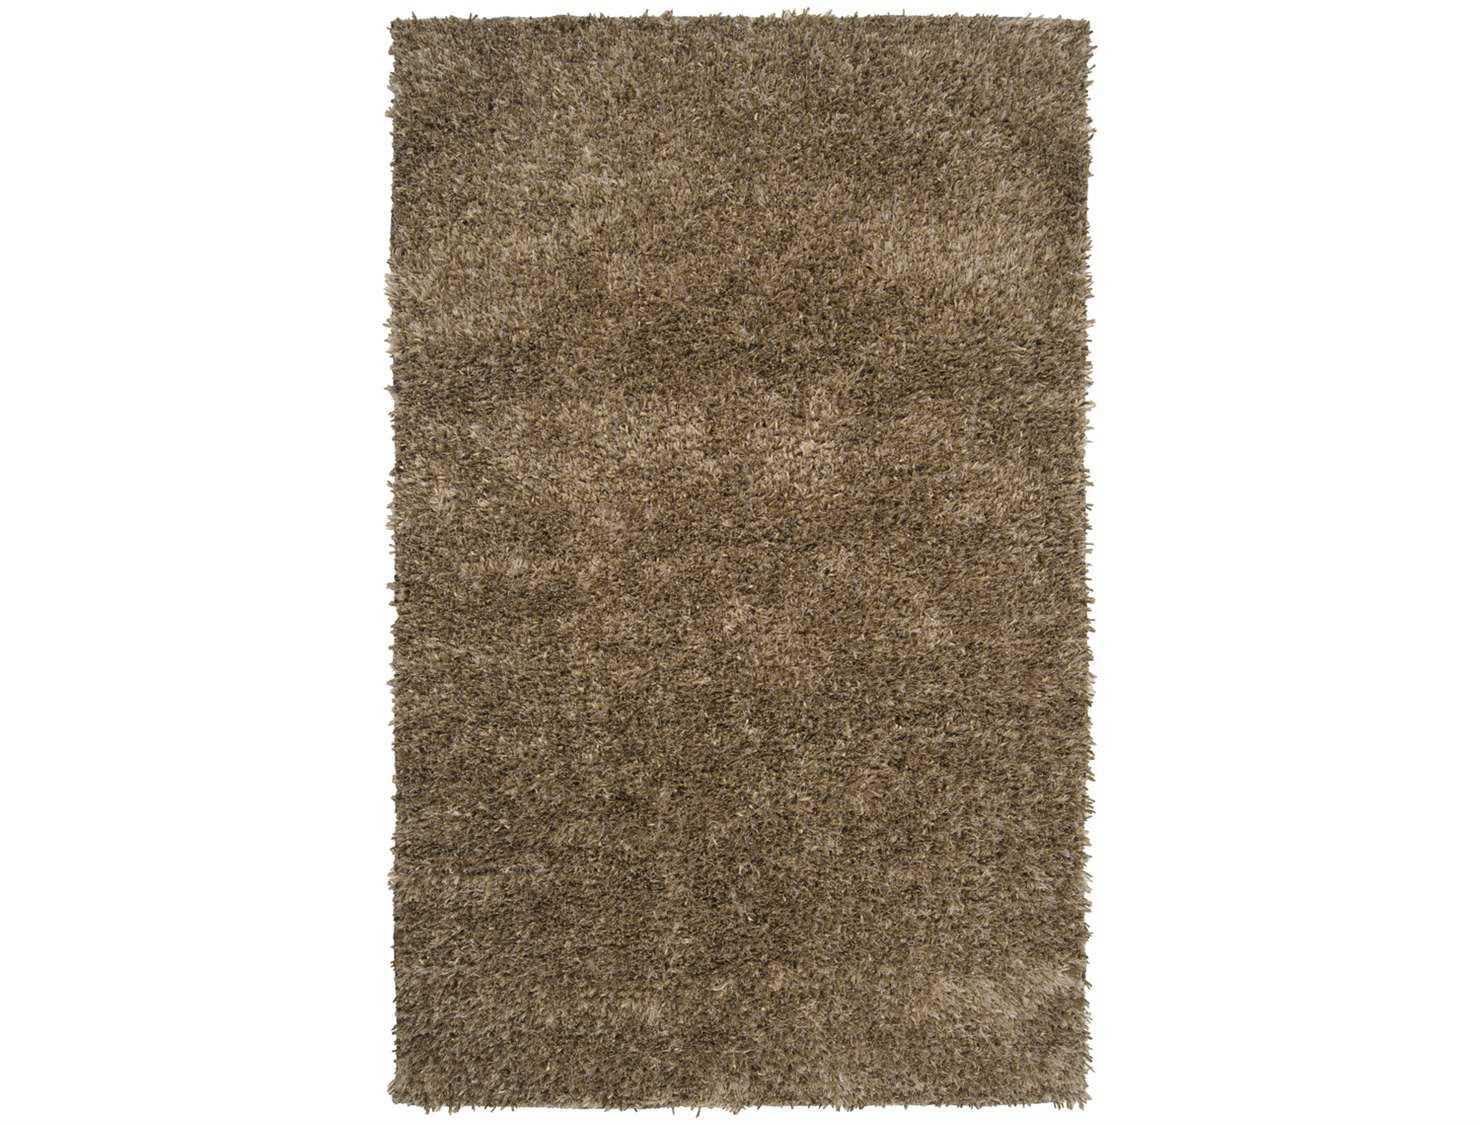 Surya candice olson fusion rectangular brown area rug for Candice olson area rugs